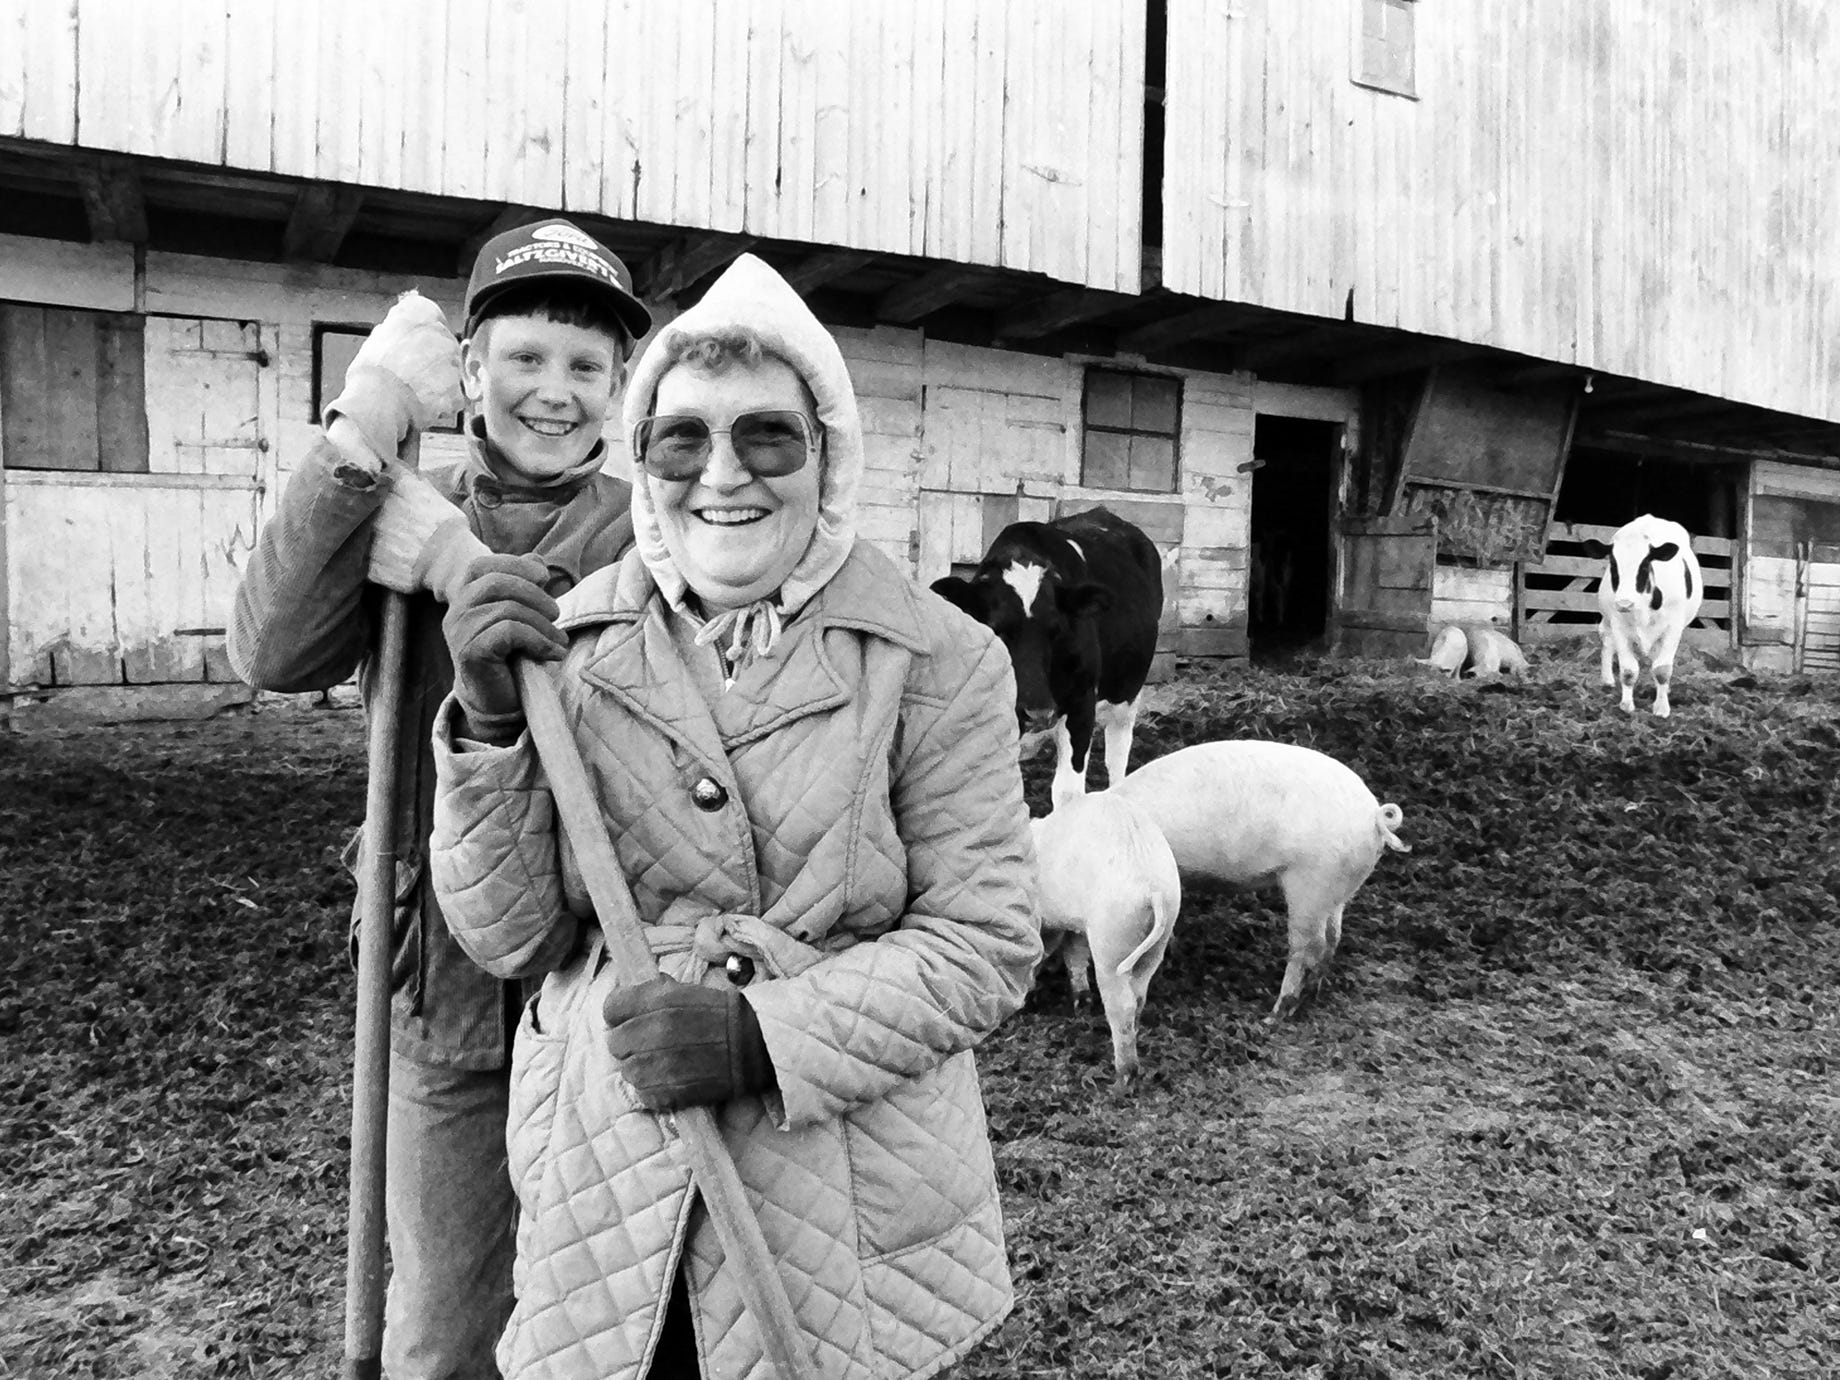 Mary Shue, right, and her son Daniel Shue in a story about the hardship of farmers across the nation in 1985. This collection of photos, many printed for the first time, is a slice of life in York County from the 1984-85 York Daily Record negative archive.